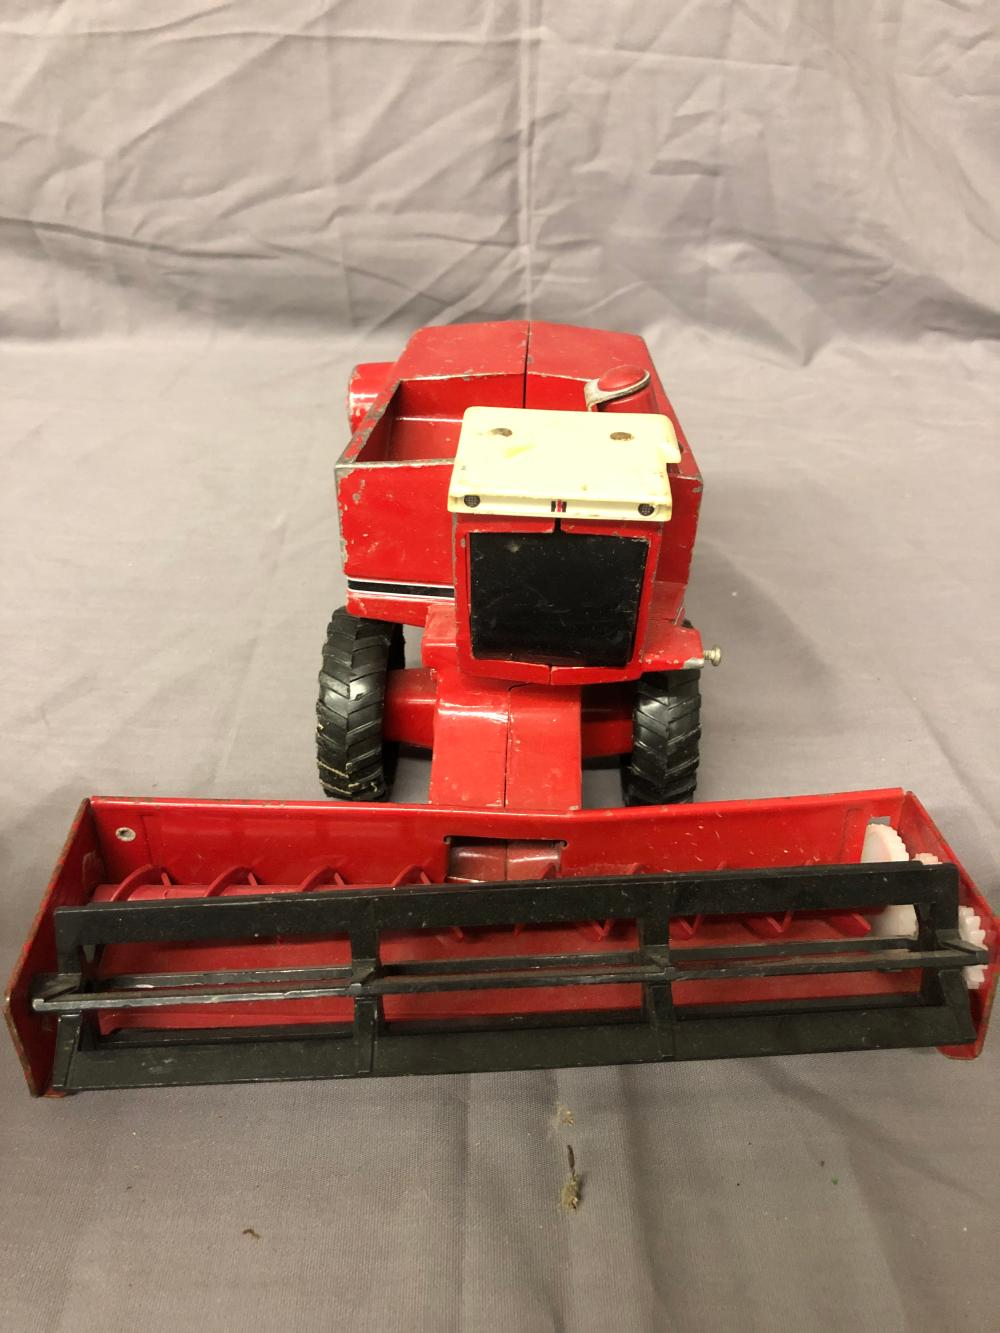 Lot 48: 1/32nd Scale International Harvester Combine